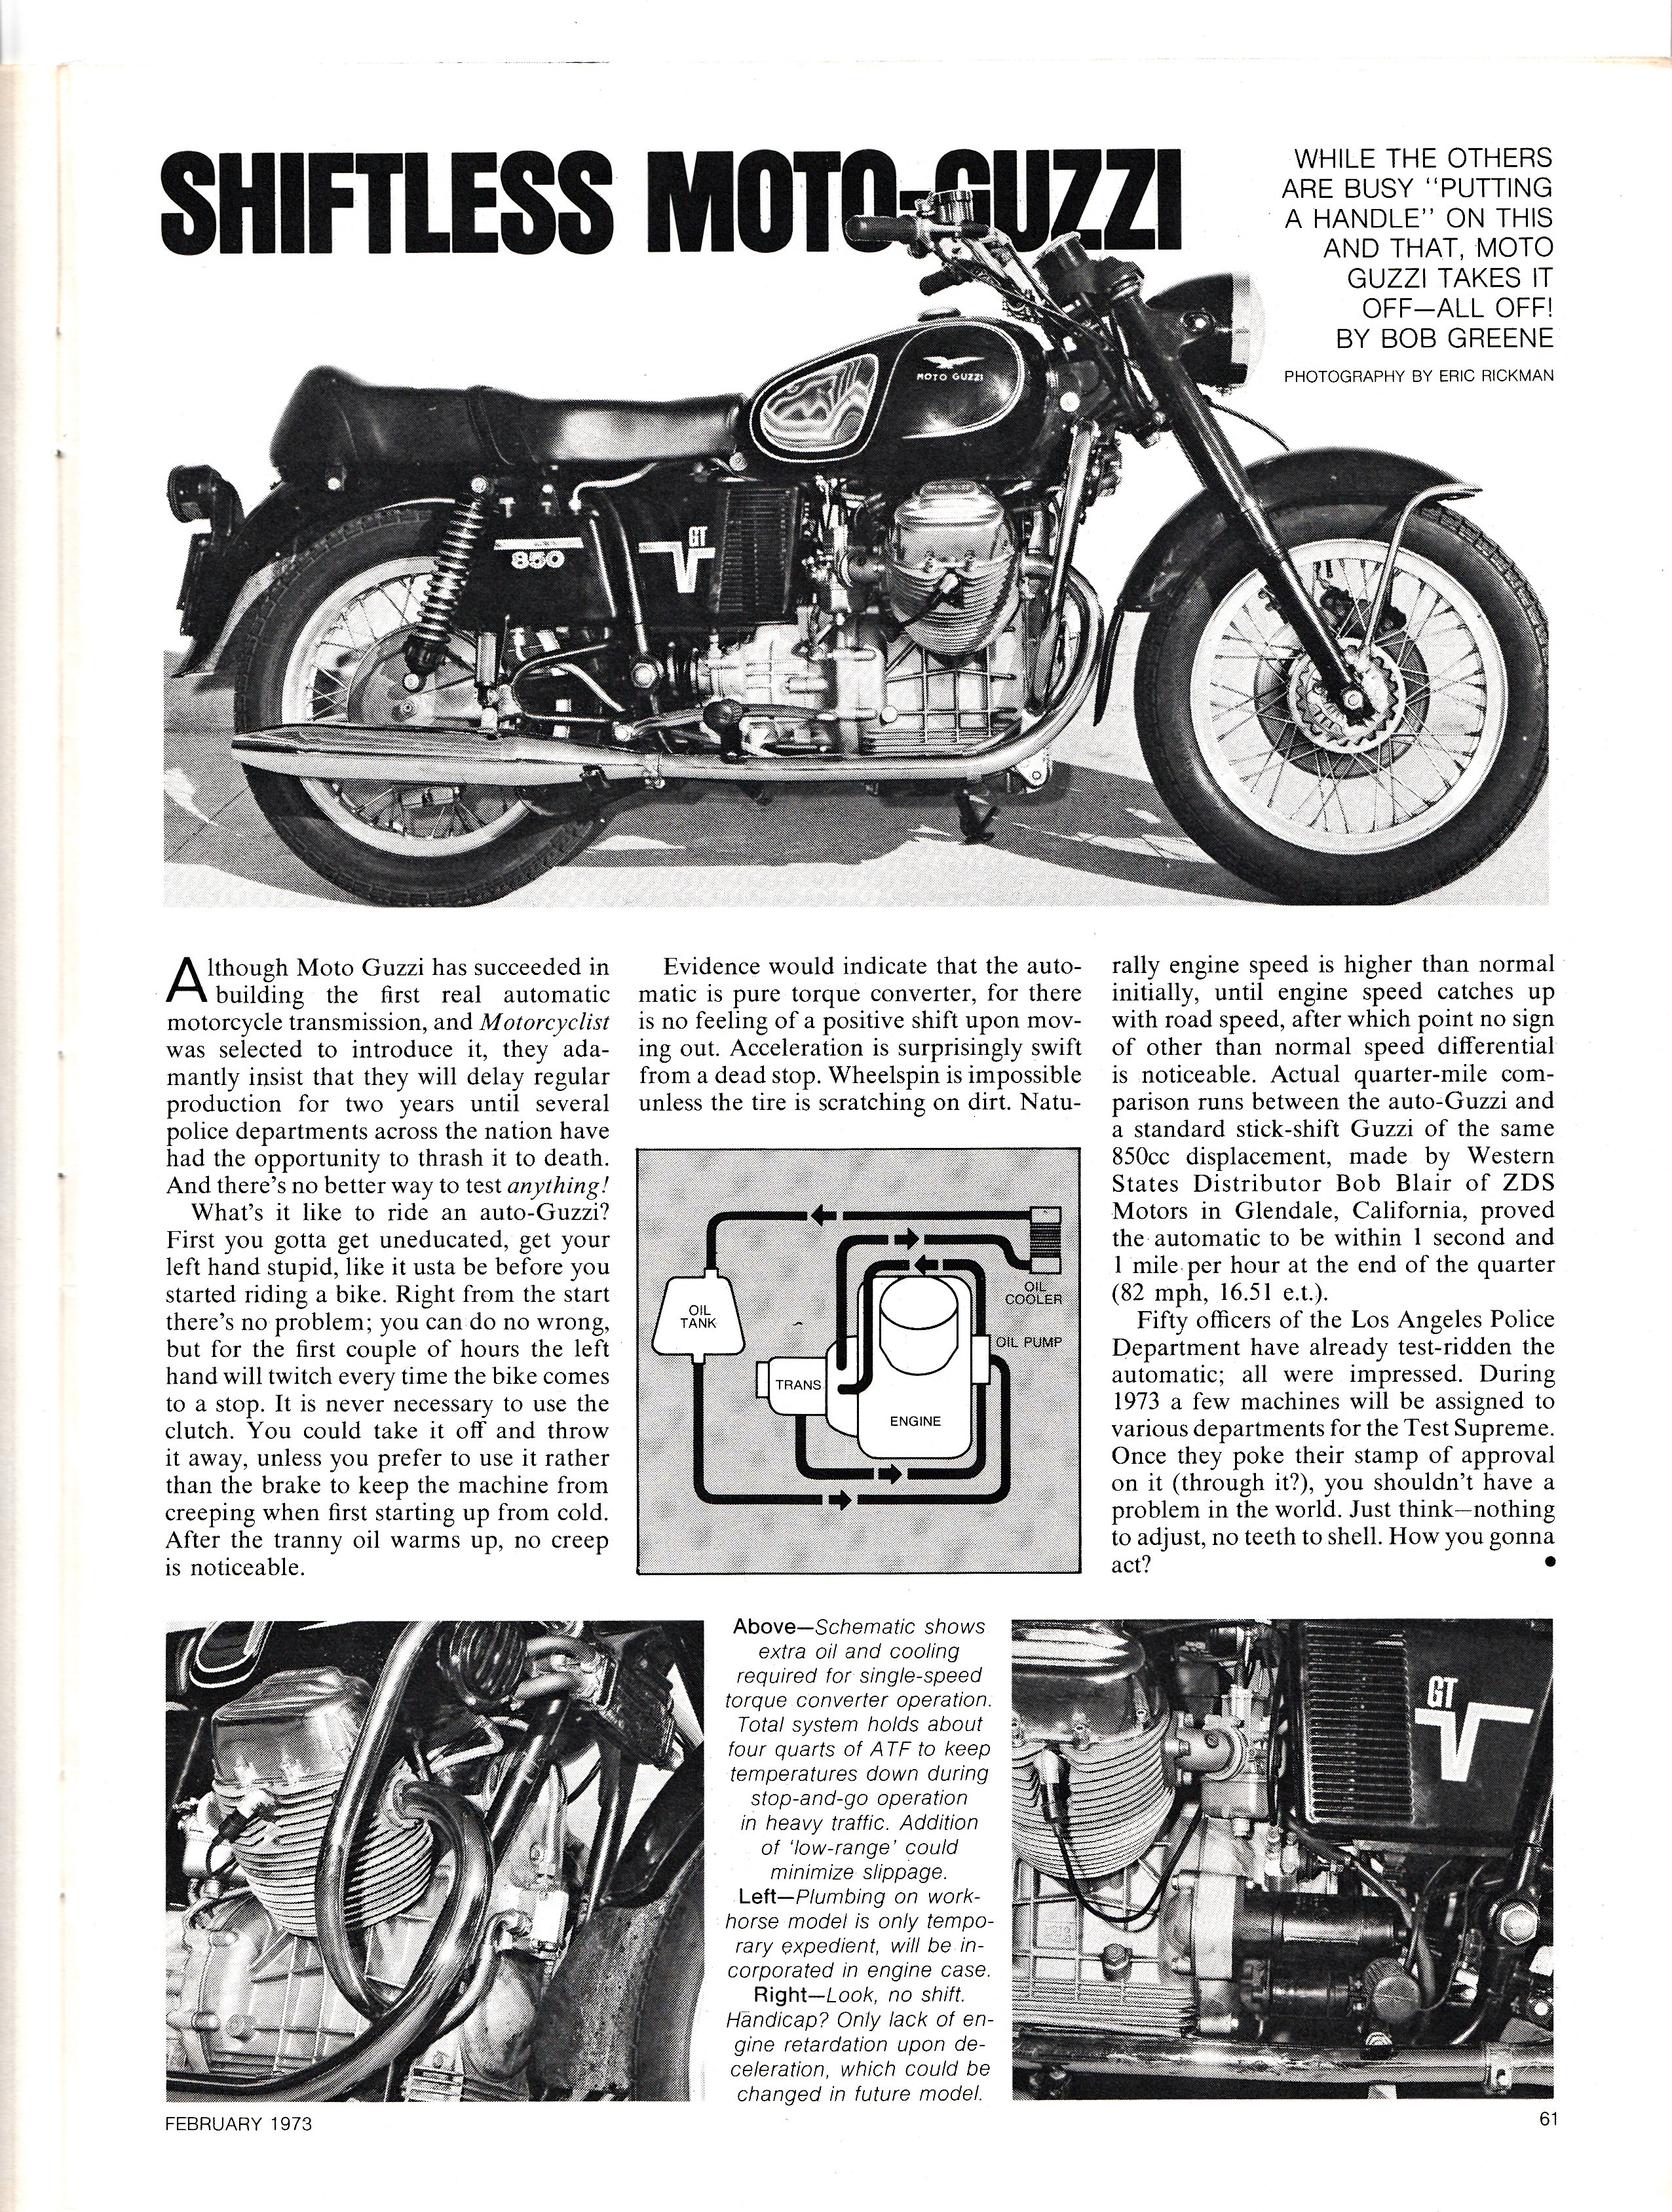 Article - Motorcyclist (1973 February) Shiftless Moto Guzzi. Early prototype of an I-Convert.